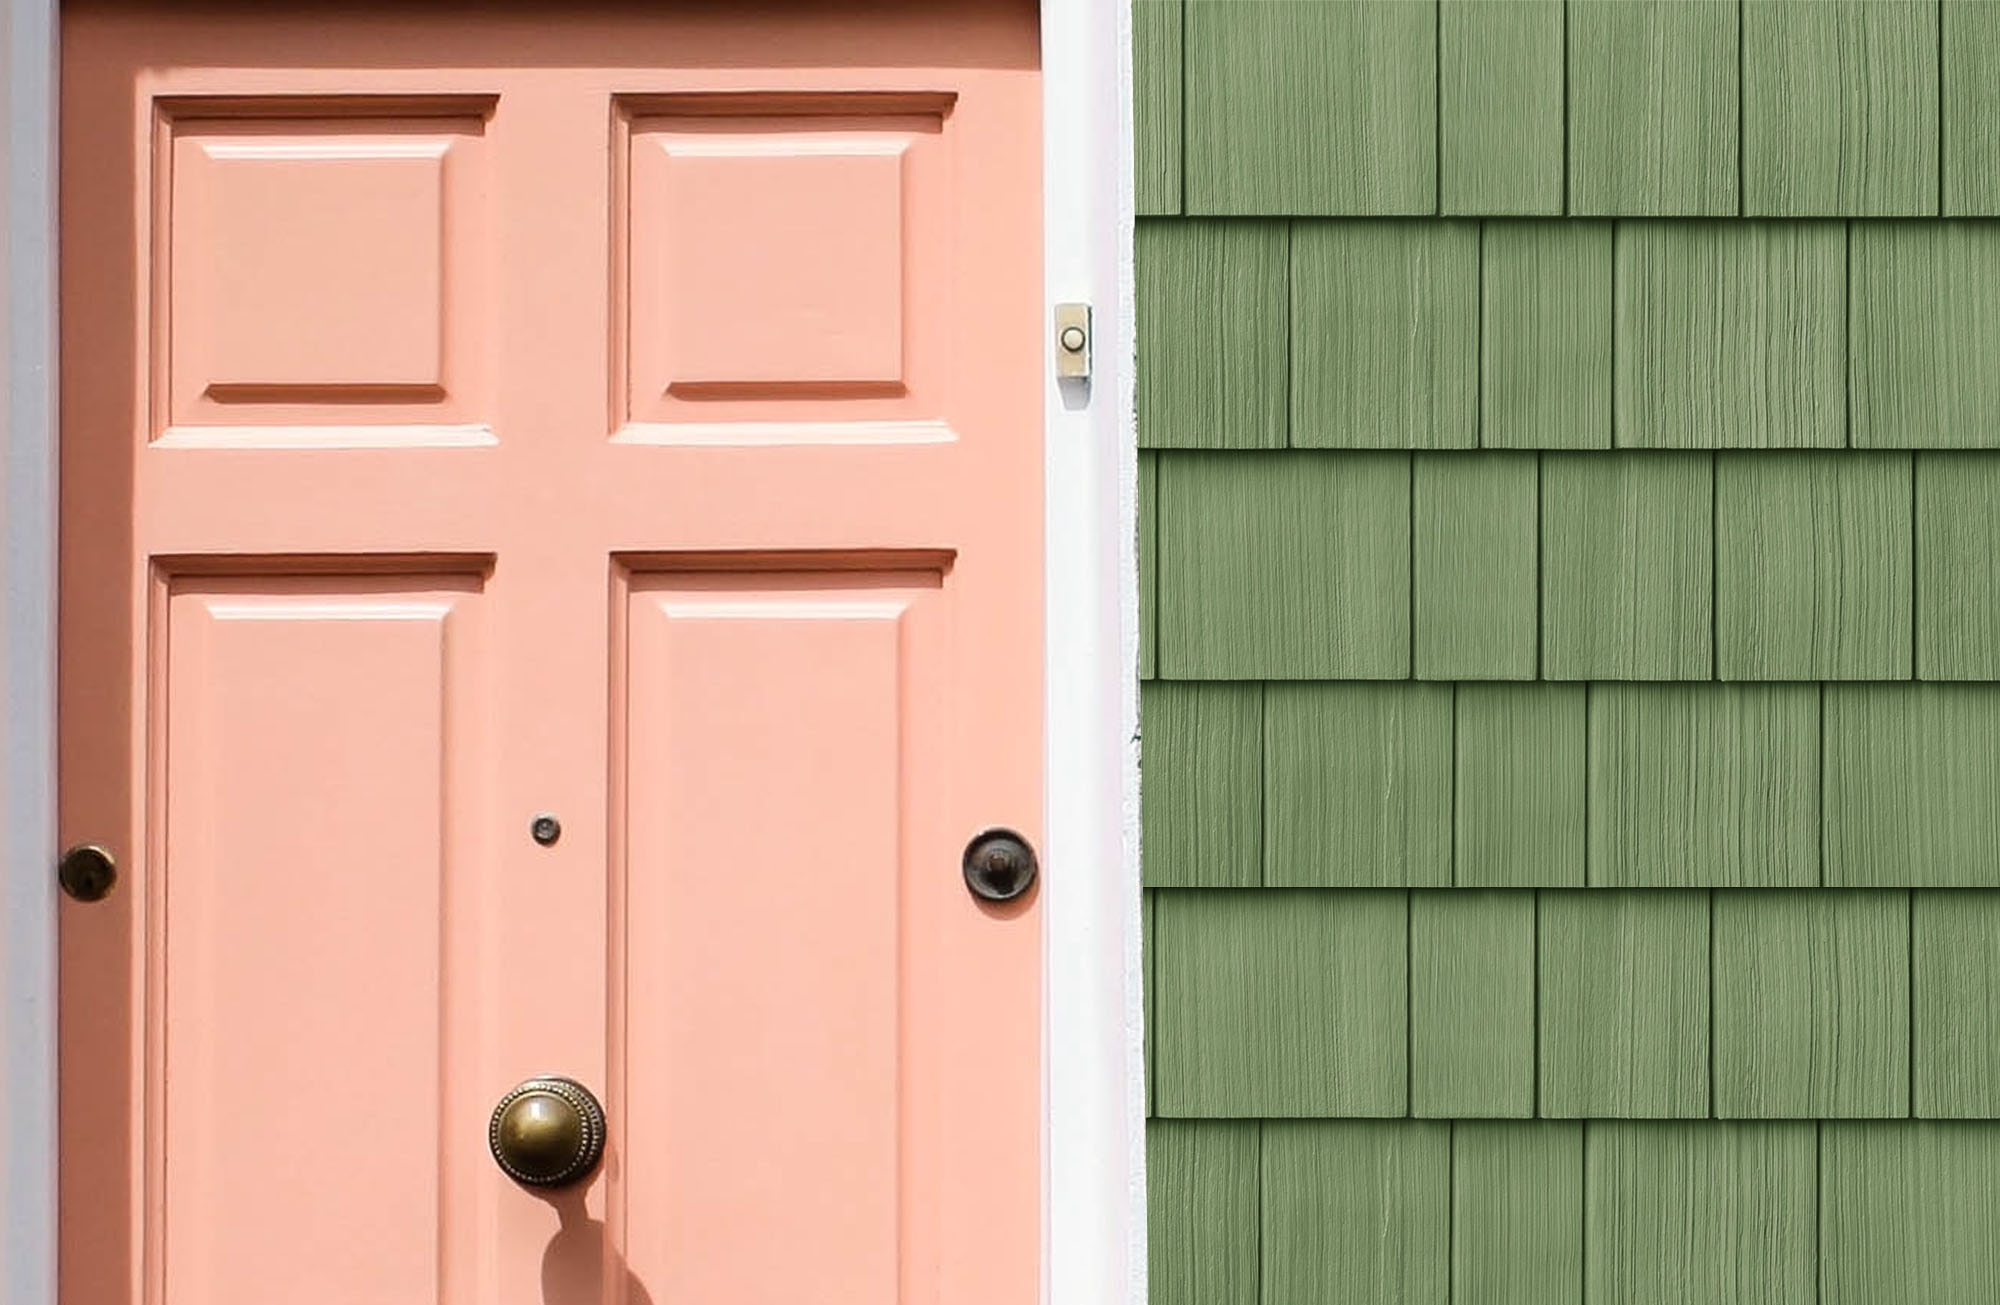 Green cedar shake siding with a salmon colored front door.